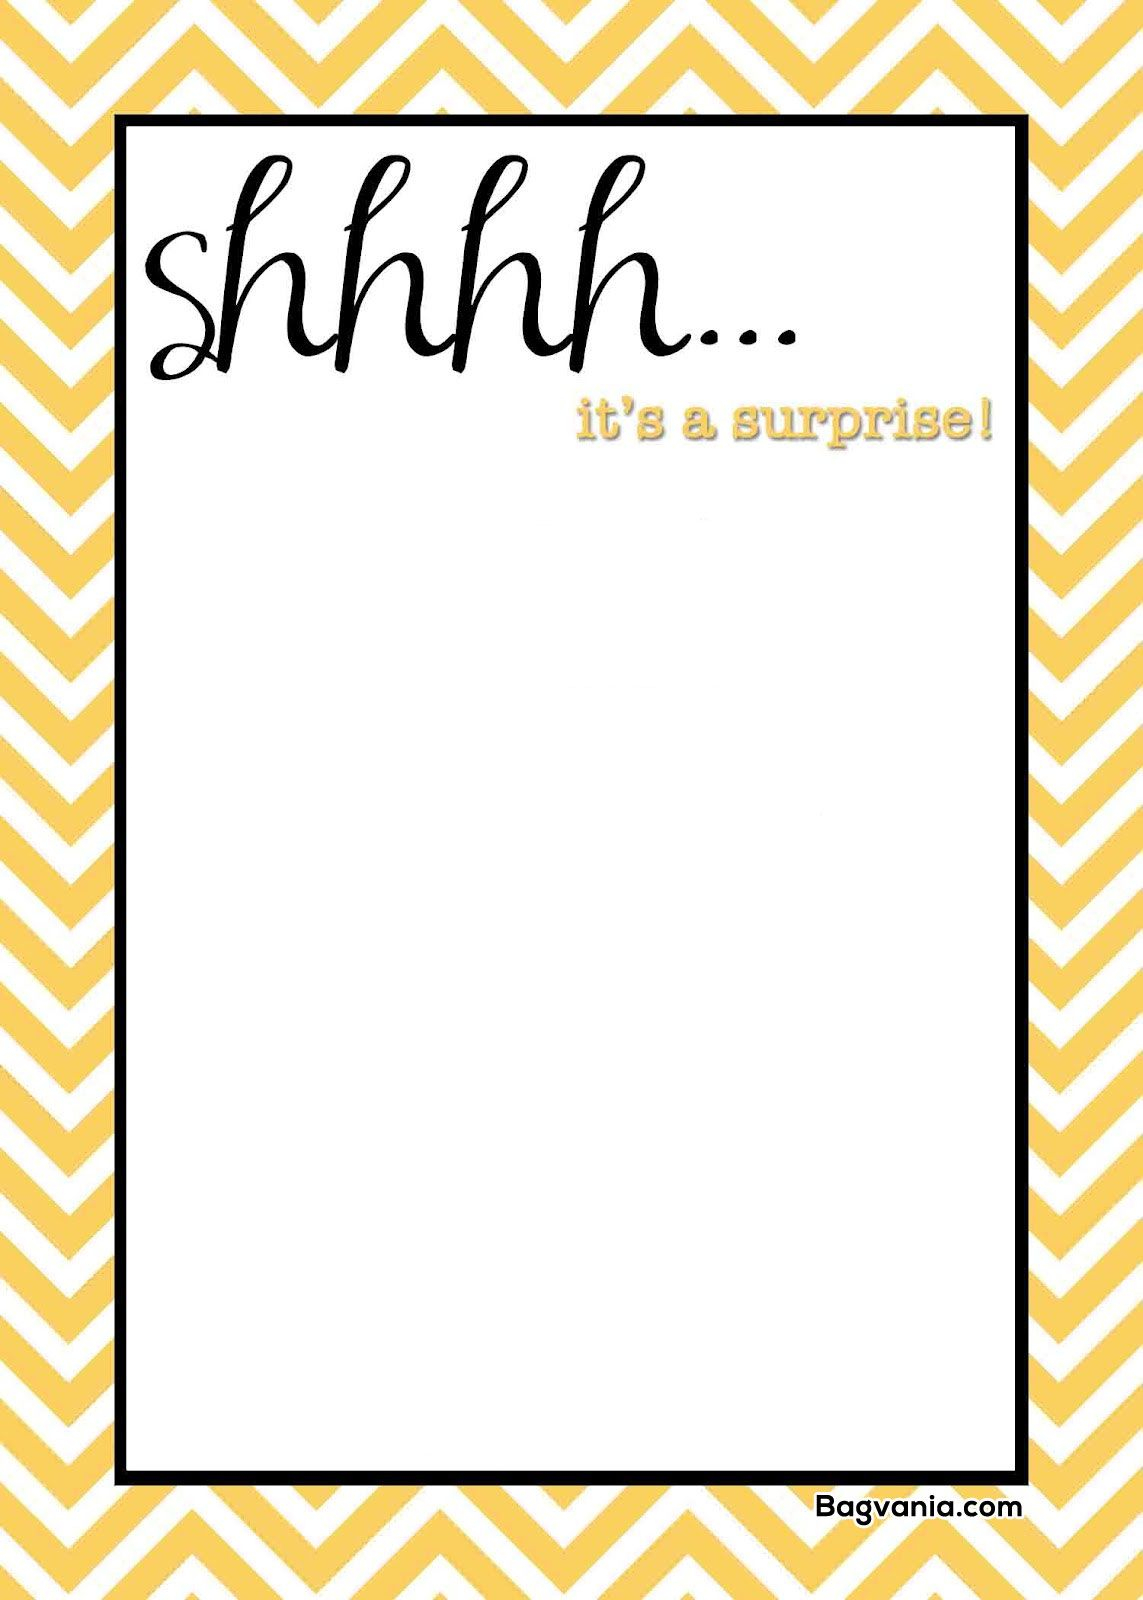 004 Surprise Party Invites Templates Template Ideas Remarkable 50th in dimensions 1143 X 1600